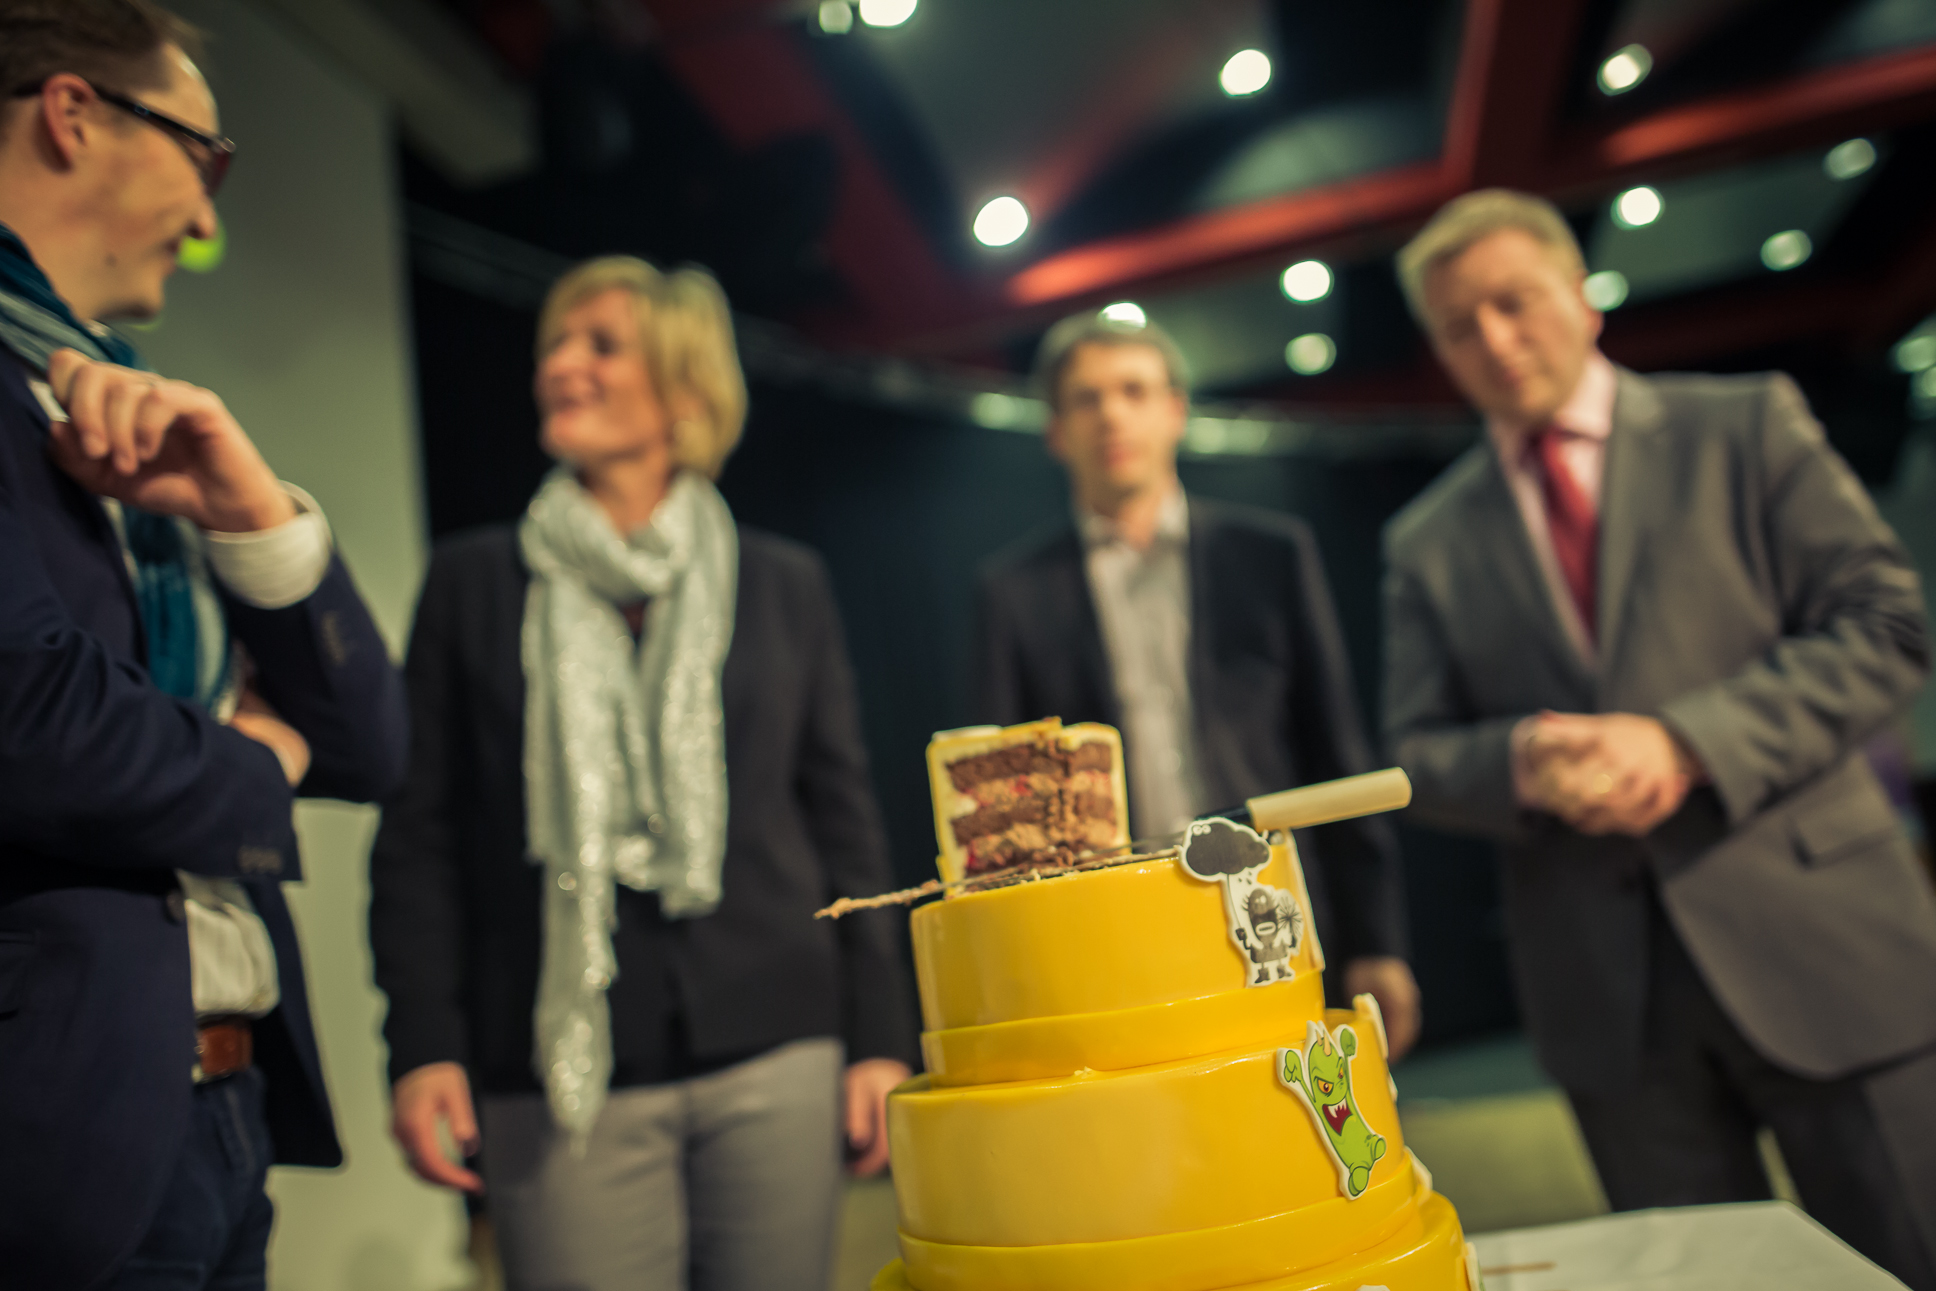 2015.10.09 - 5 Jahre BeeSecure-239